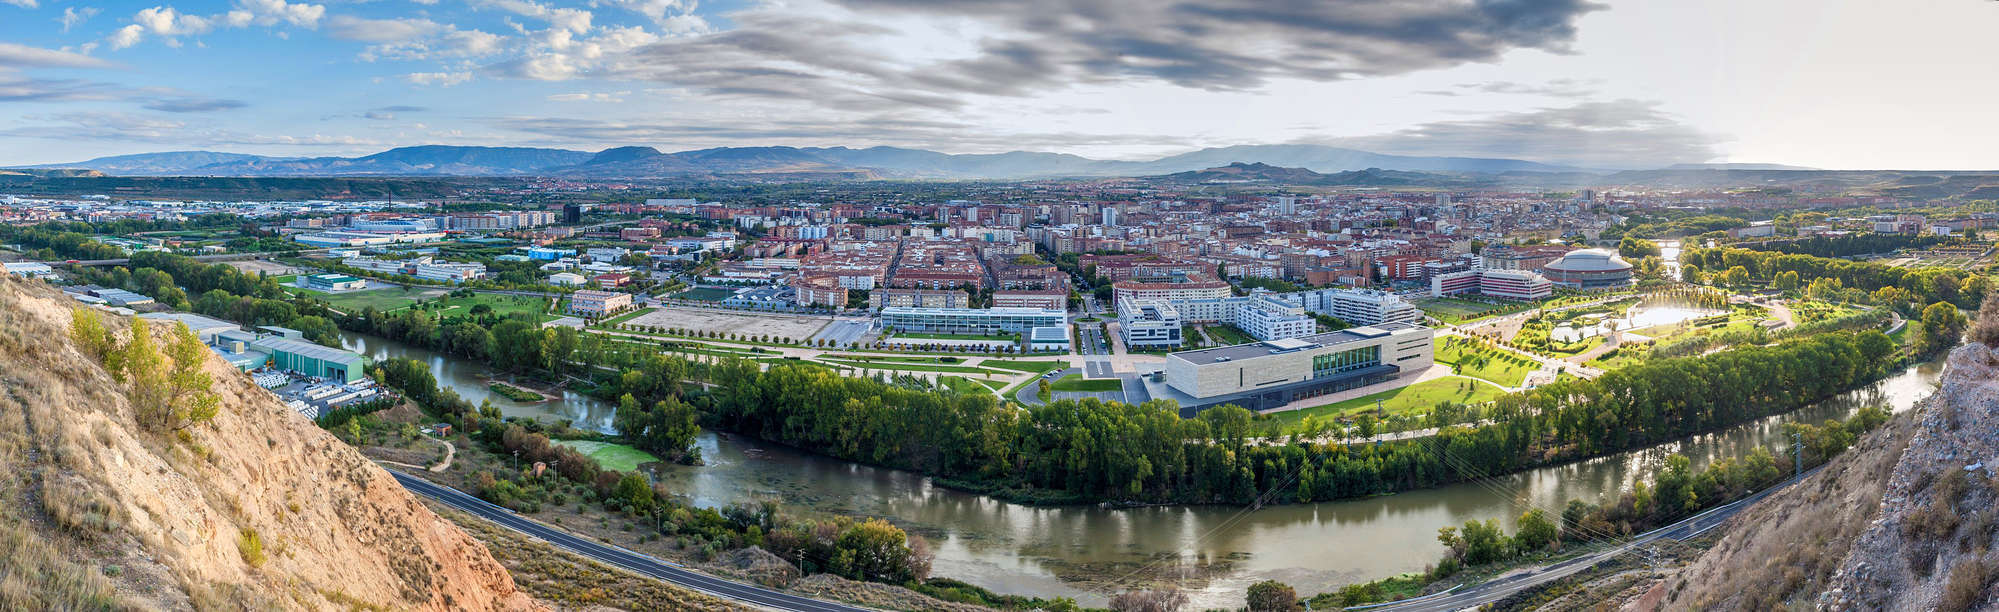 Aerial view of Logrono, Spain, Rioja